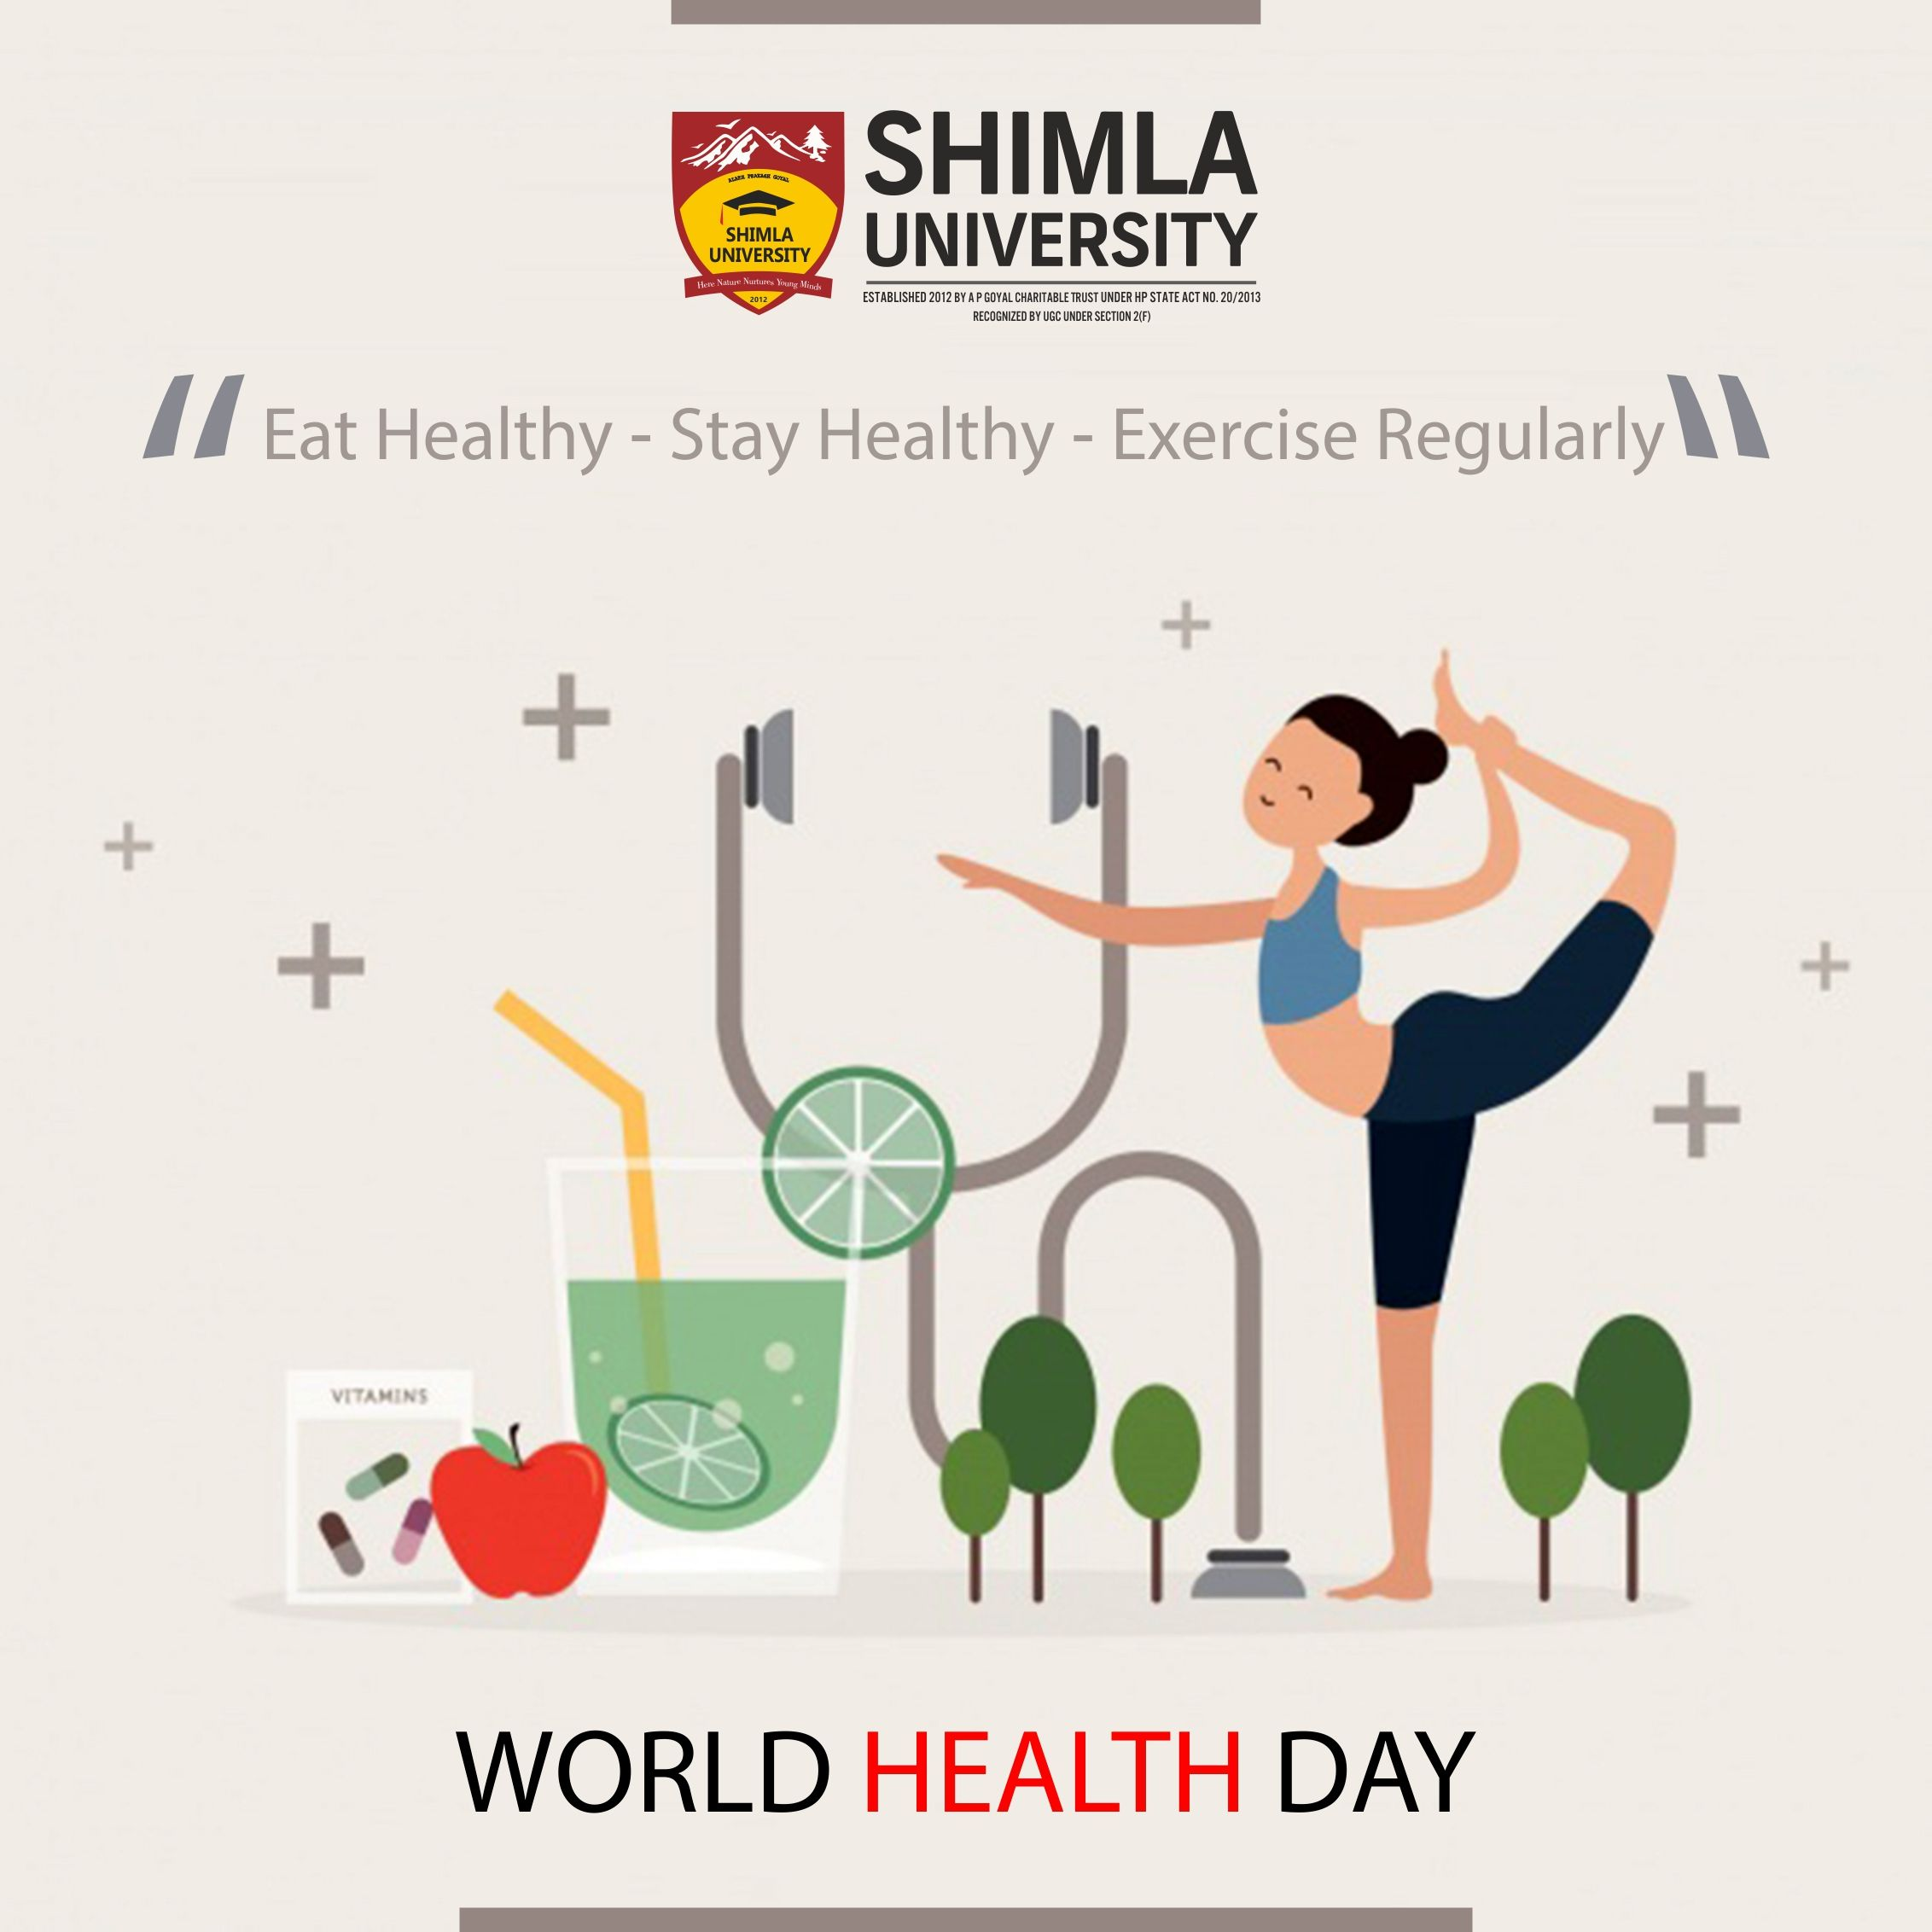 World Health Day is celebrated every year on the founding